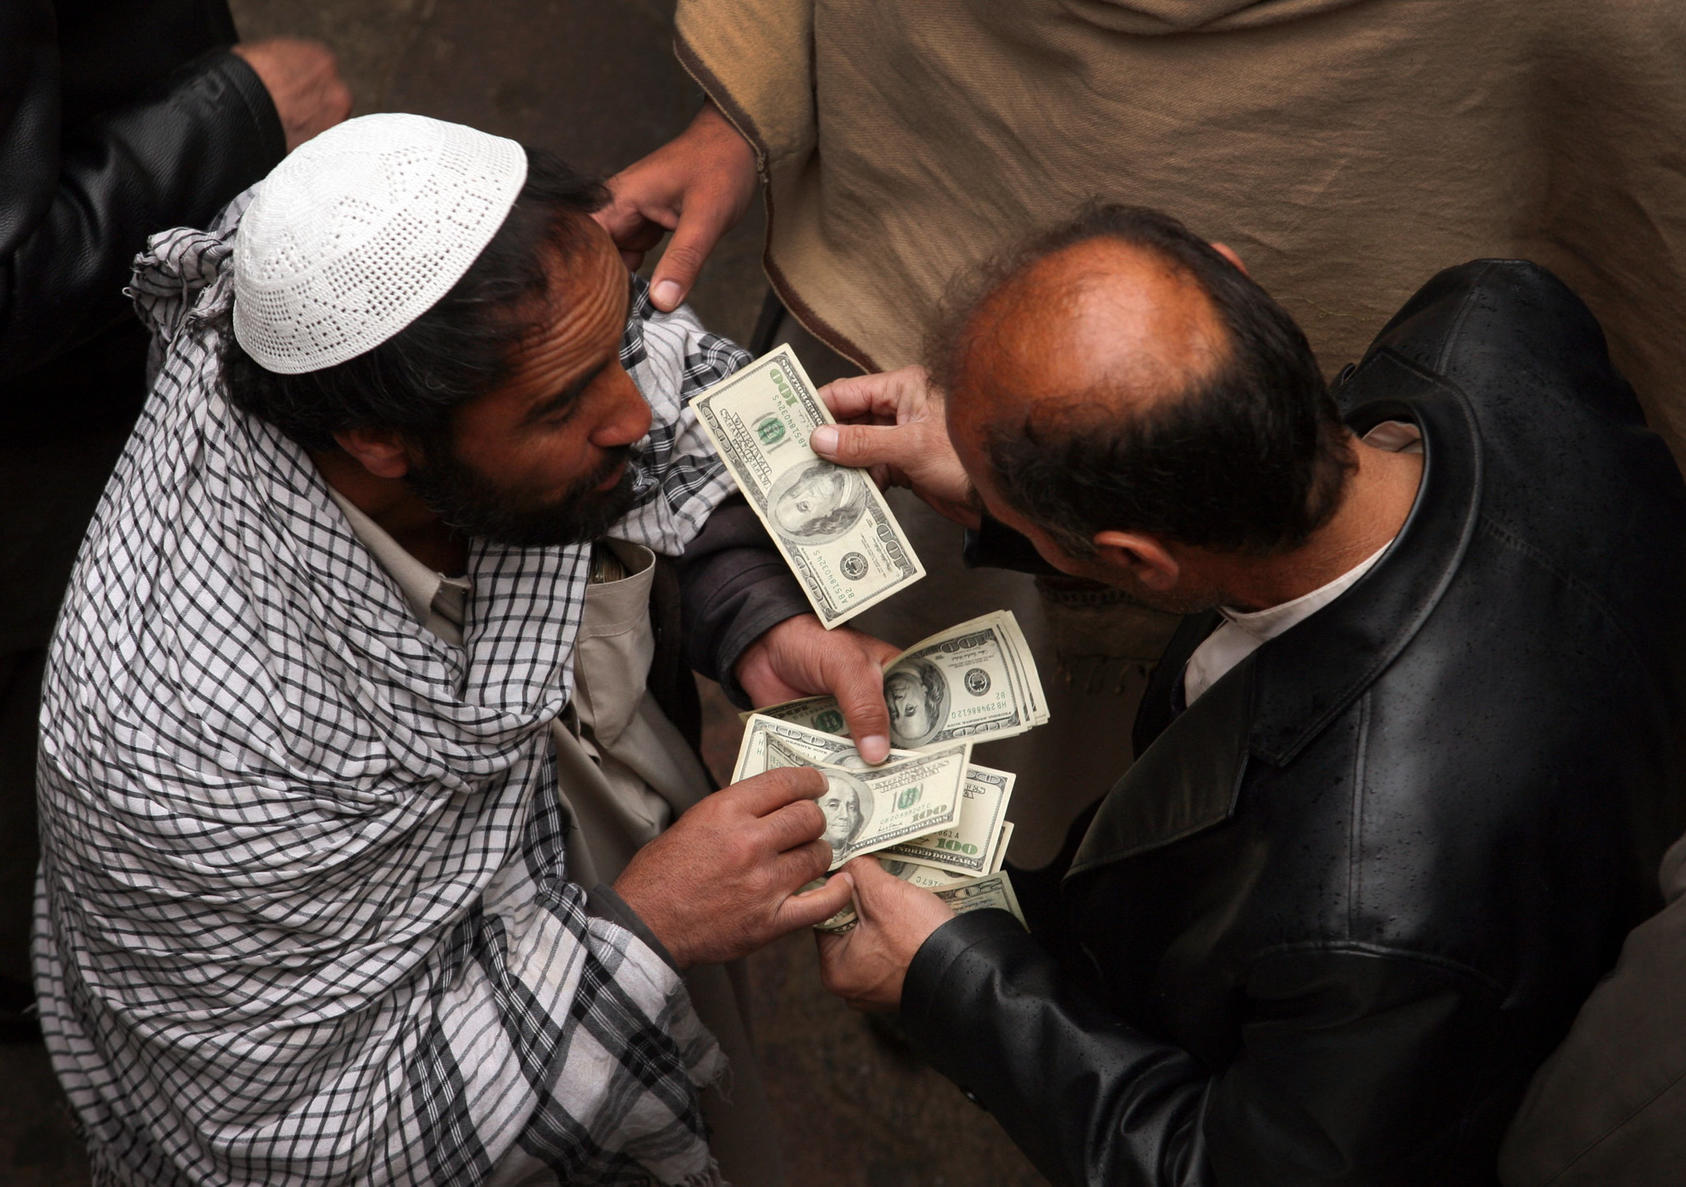 Men negotiate money exchanges at a market in Kabul, on Jan. 29, 2011. The large, informal, market is crucial to the economy in a country where many of the poor do not use banks. Potential losses of as much as $900 million at the Kabul Bank could deepen distrust of banks in the country. (Michael Kamber/The New York Times)